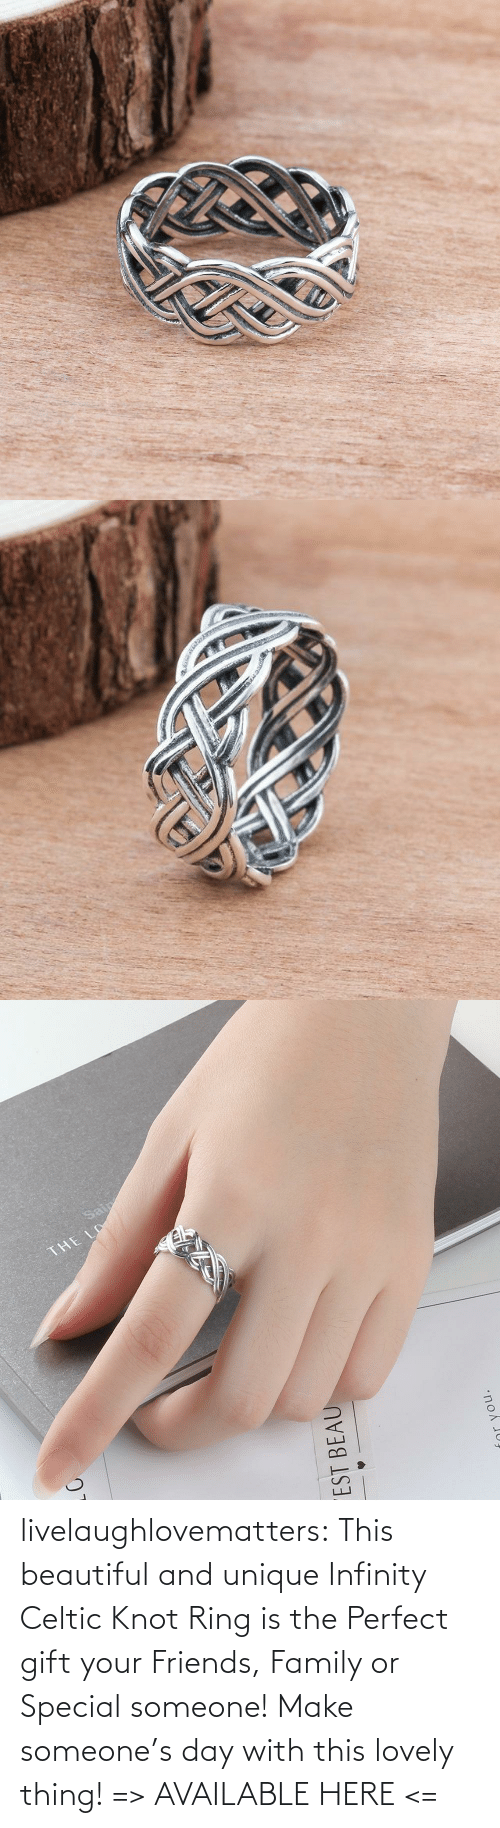 Knot: livelaughlovematters:  This beautiful and unique Infinity Celtic Knot Ring is the Perfect gift your Friends, Family or Special someone! Make someone's day with this lovely thing! => AVAILABLE HERE <=